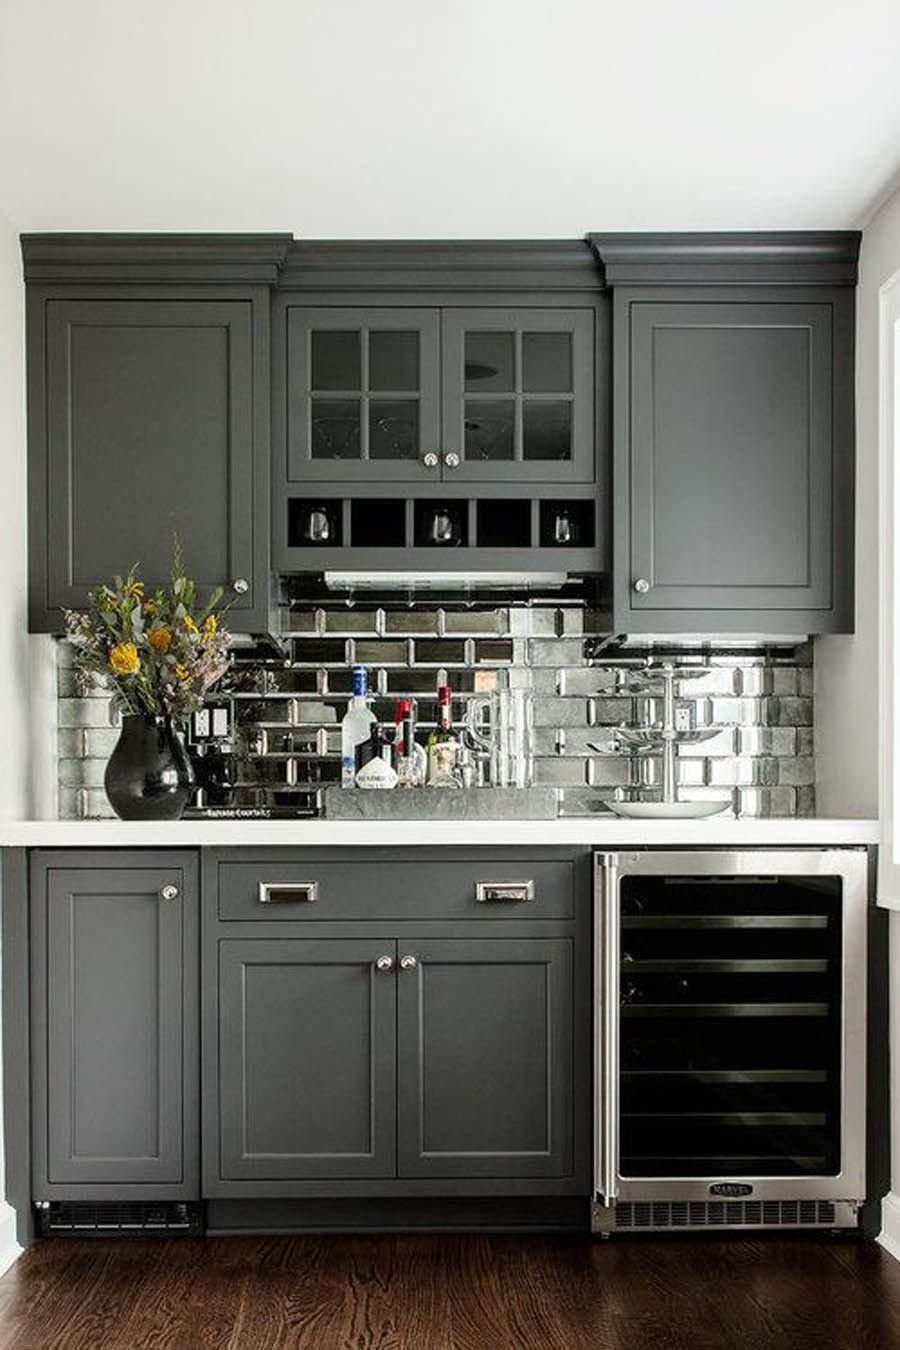 Best Kitchen Gallery: Tour A Home That Checks All Our Favorite Design Trend Boxes Gray of Gray On Gray Kitchen on rachelxblog.com